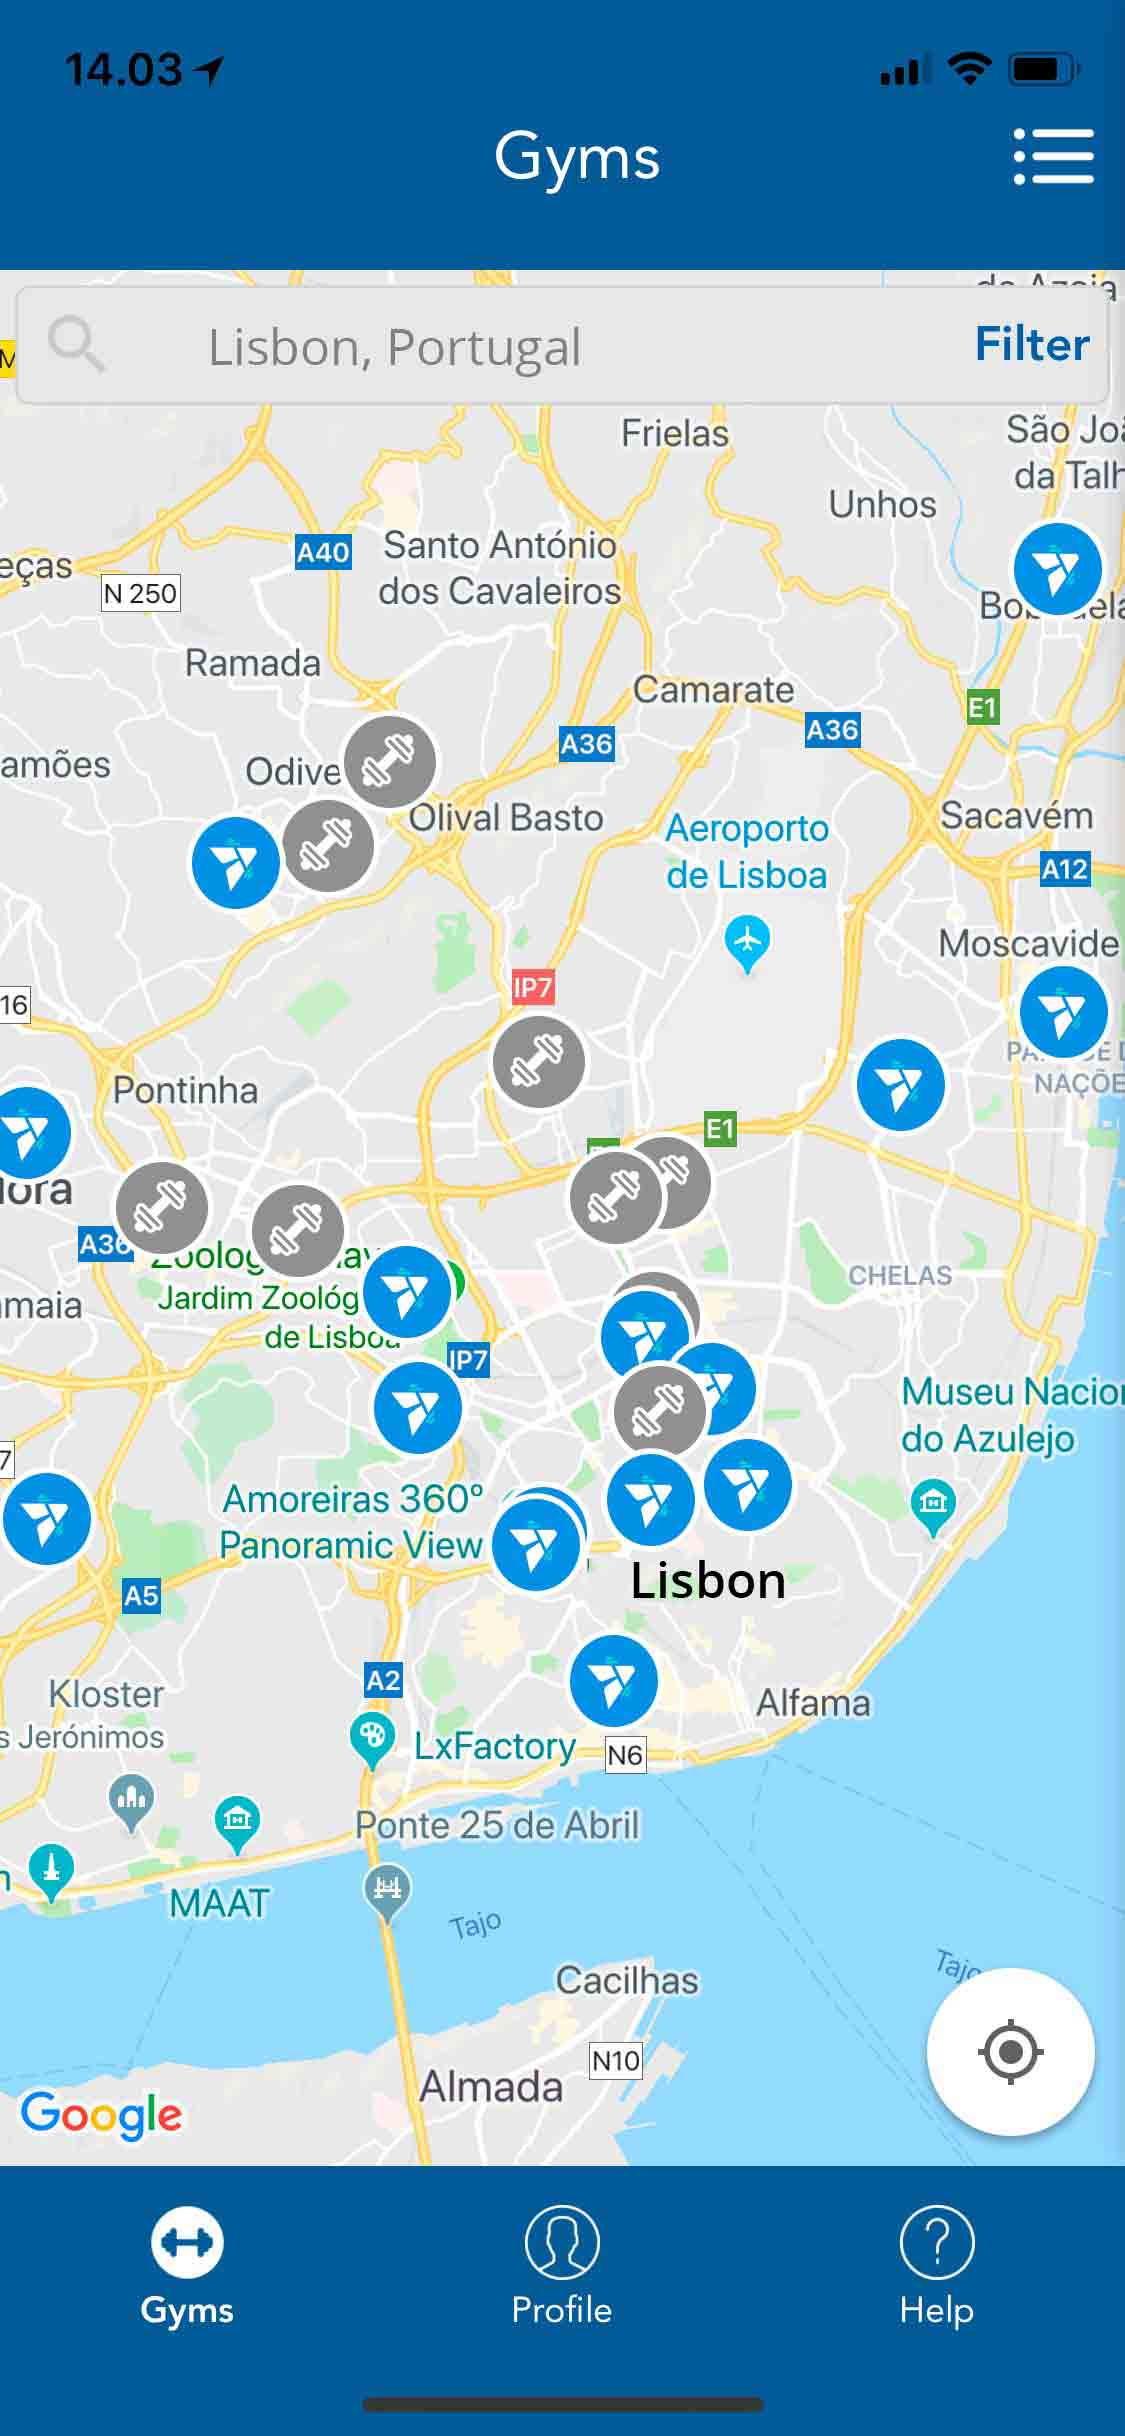 Lisbon gyms with Trainaway